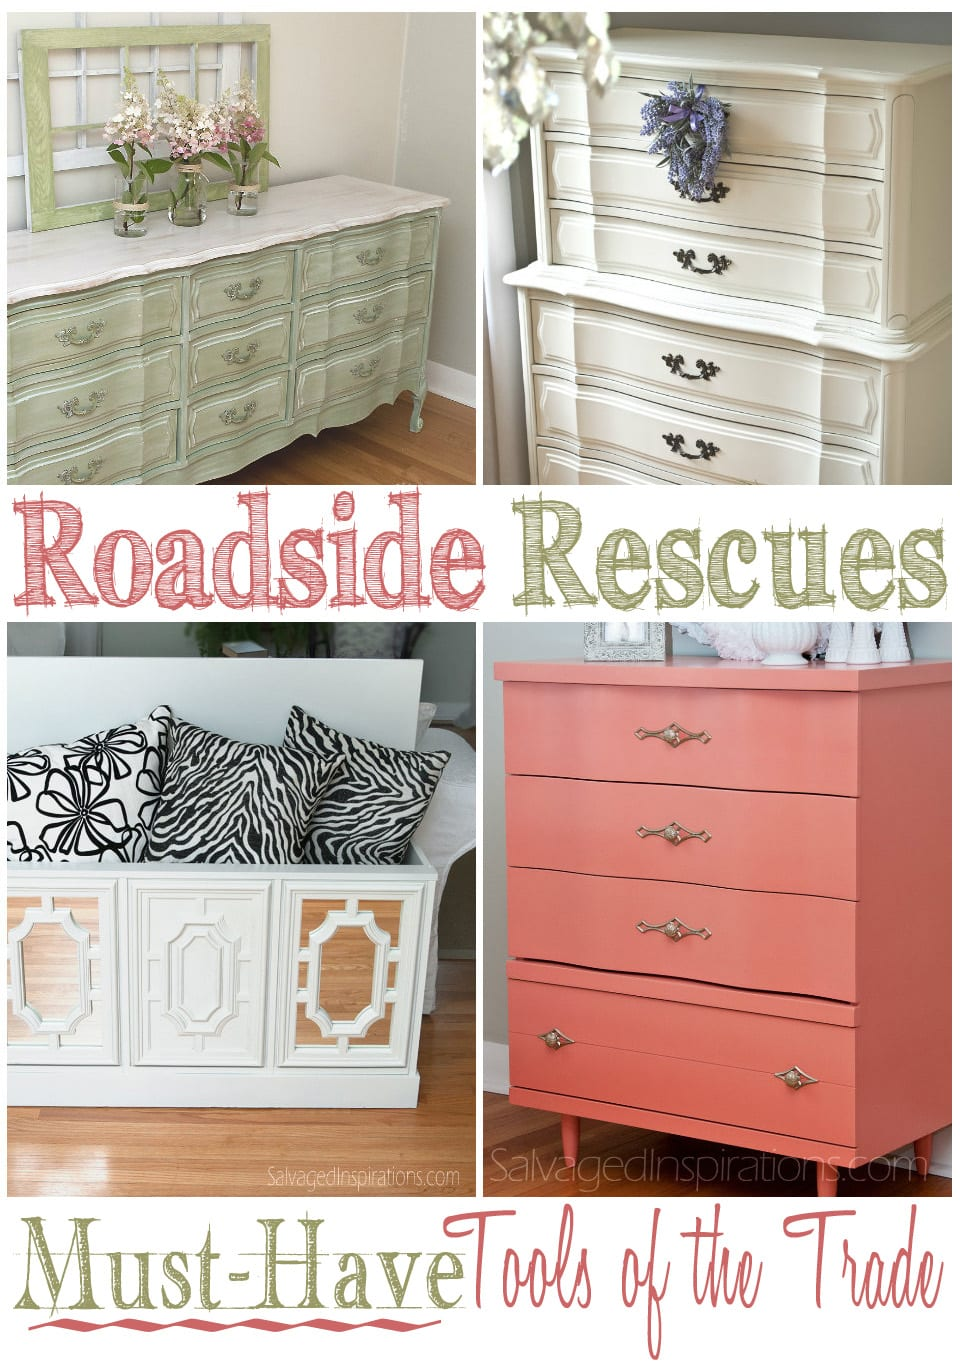 Roadside Rescue: Must-Have Tools of the Trade